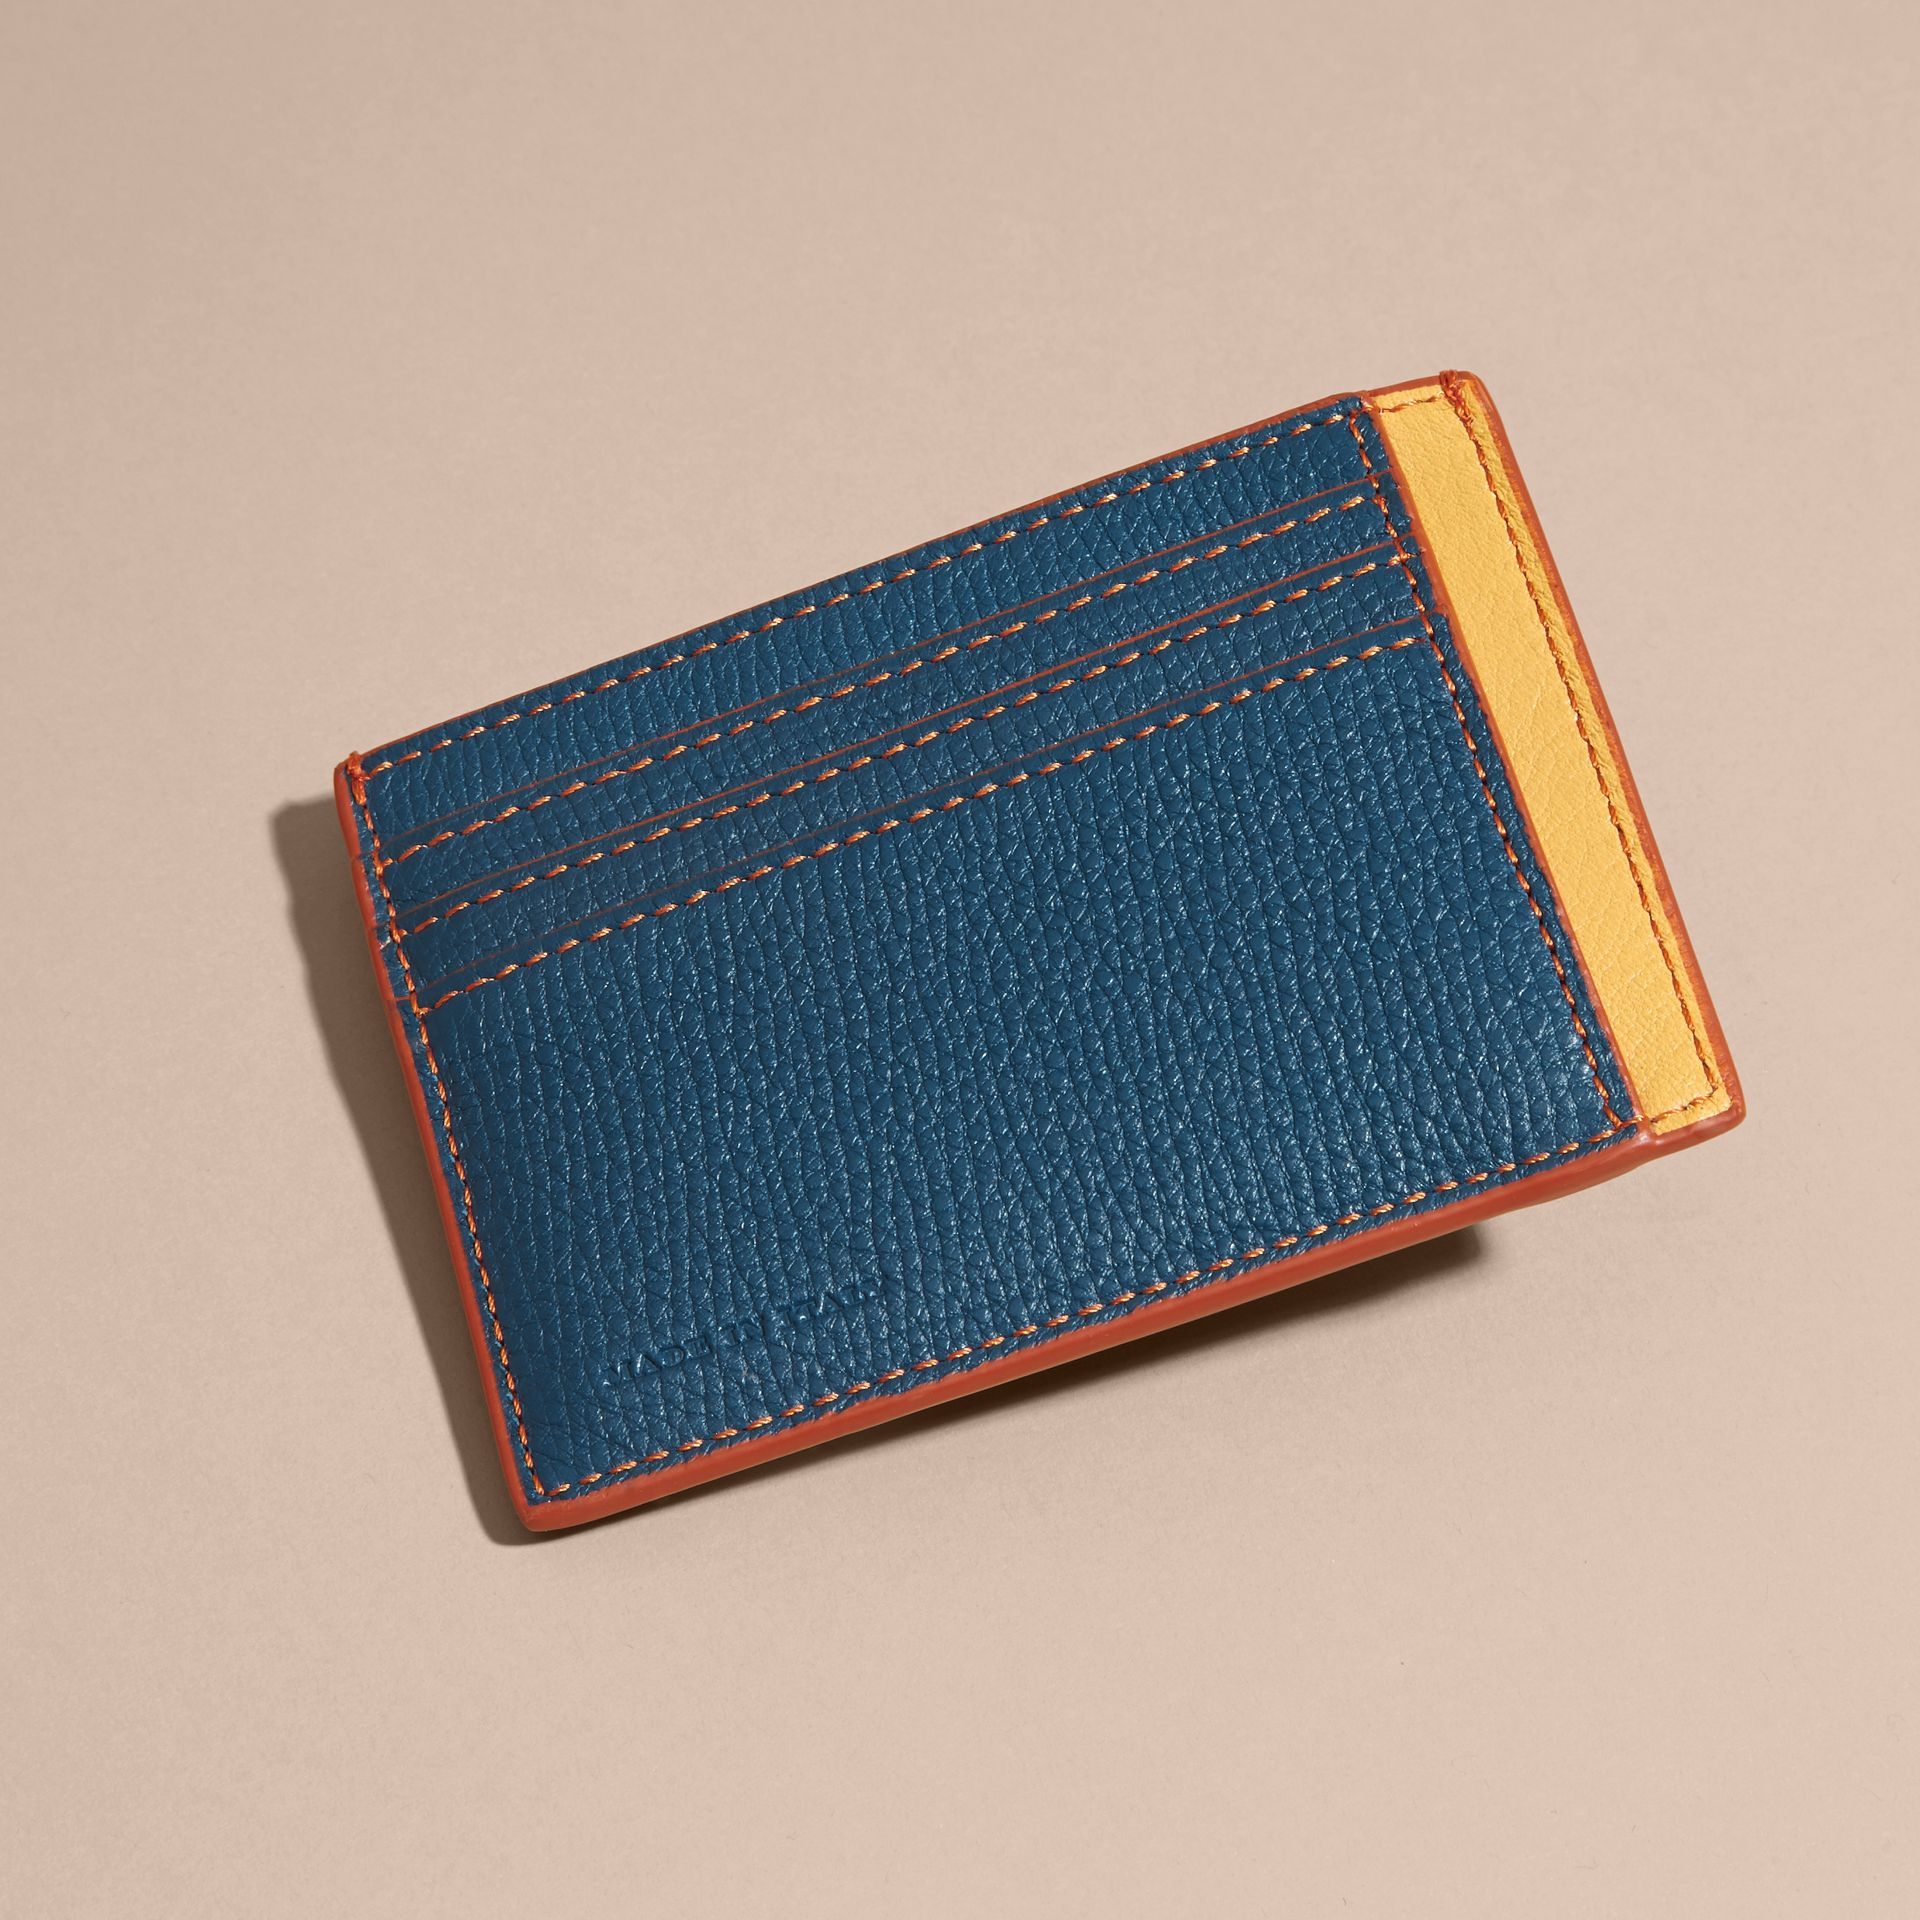 Colour Block Leather Card Case in Marine Blue - gallery image 4